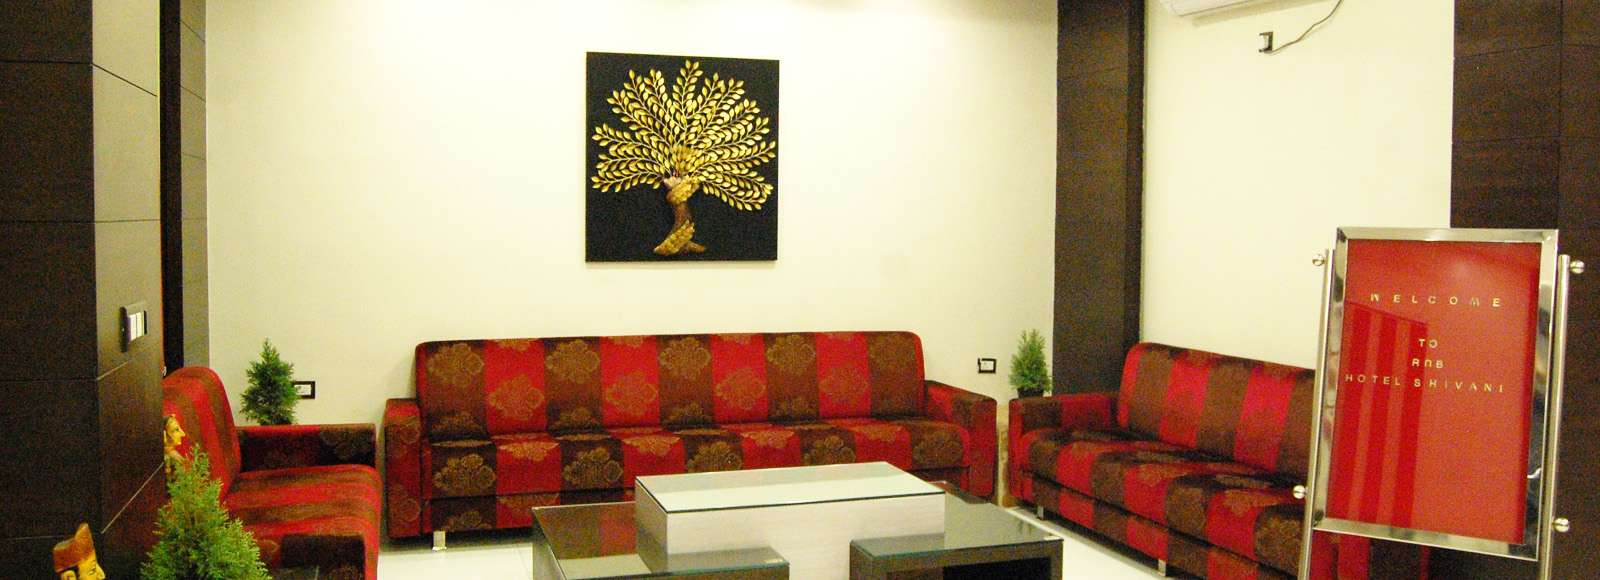 Cheap_Hotels_in_Udaipur-compressed